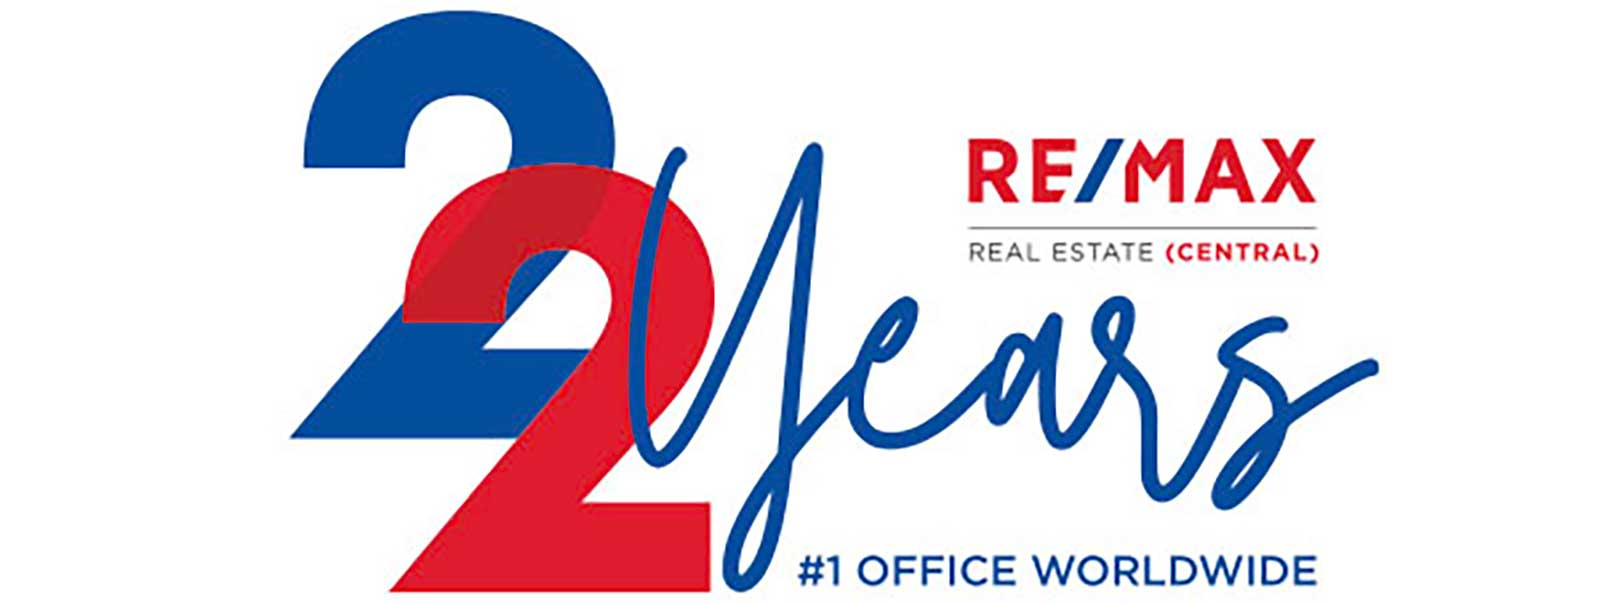 RE/MAX Real Estate (Central)  REALTOR®